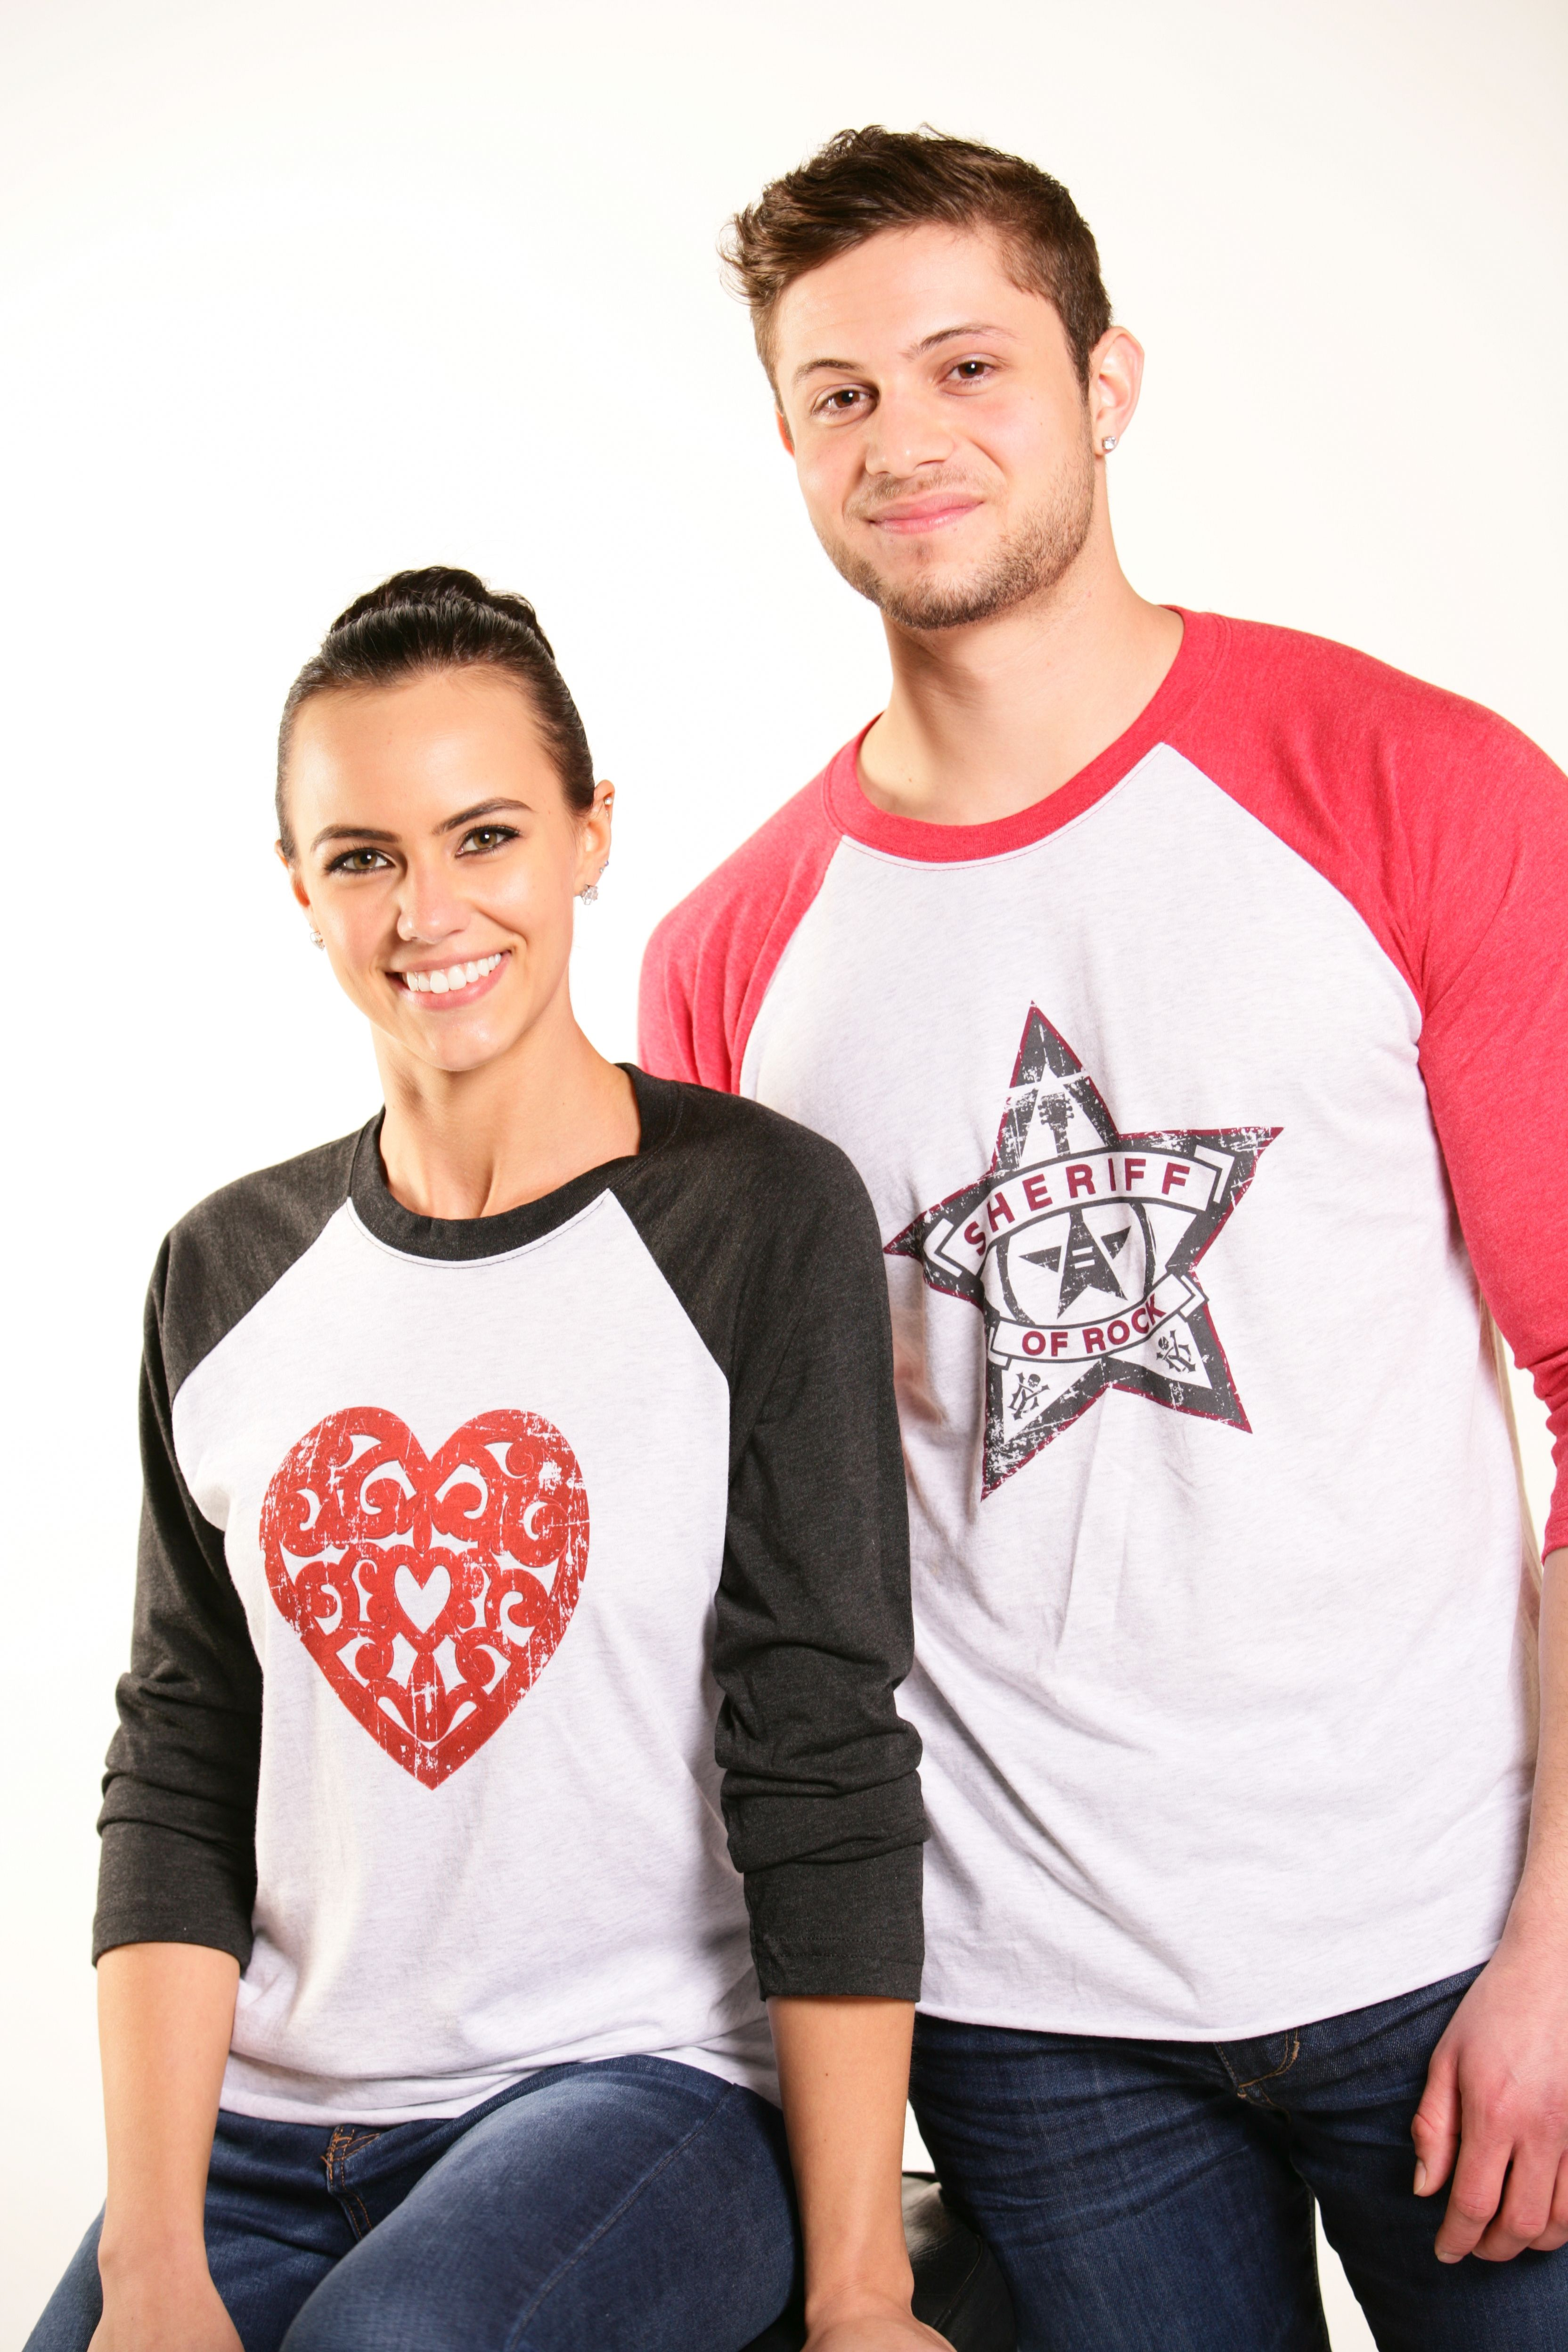 Valentines Sale!!! 40% of our entire website this week only! Use promo code HeartDYC40 #RockRelaxRepeat #GraphicTees